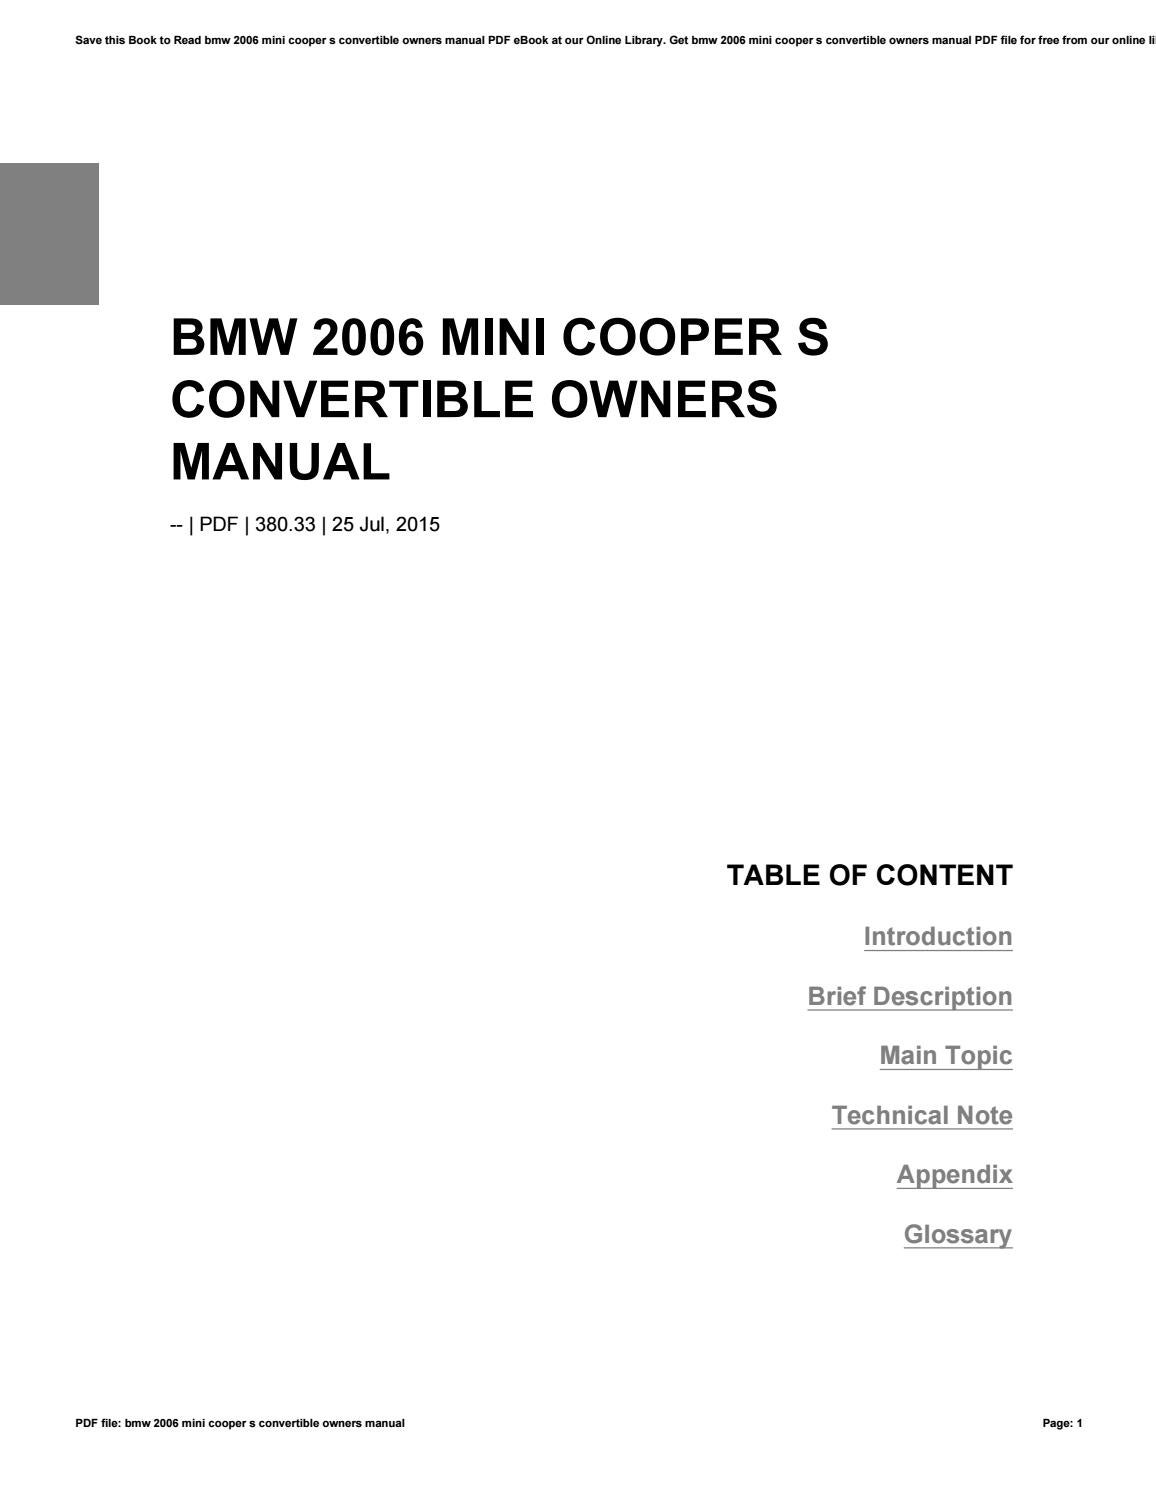 Bmw 2006-mini-cooper-s-convertible-owners-manual.